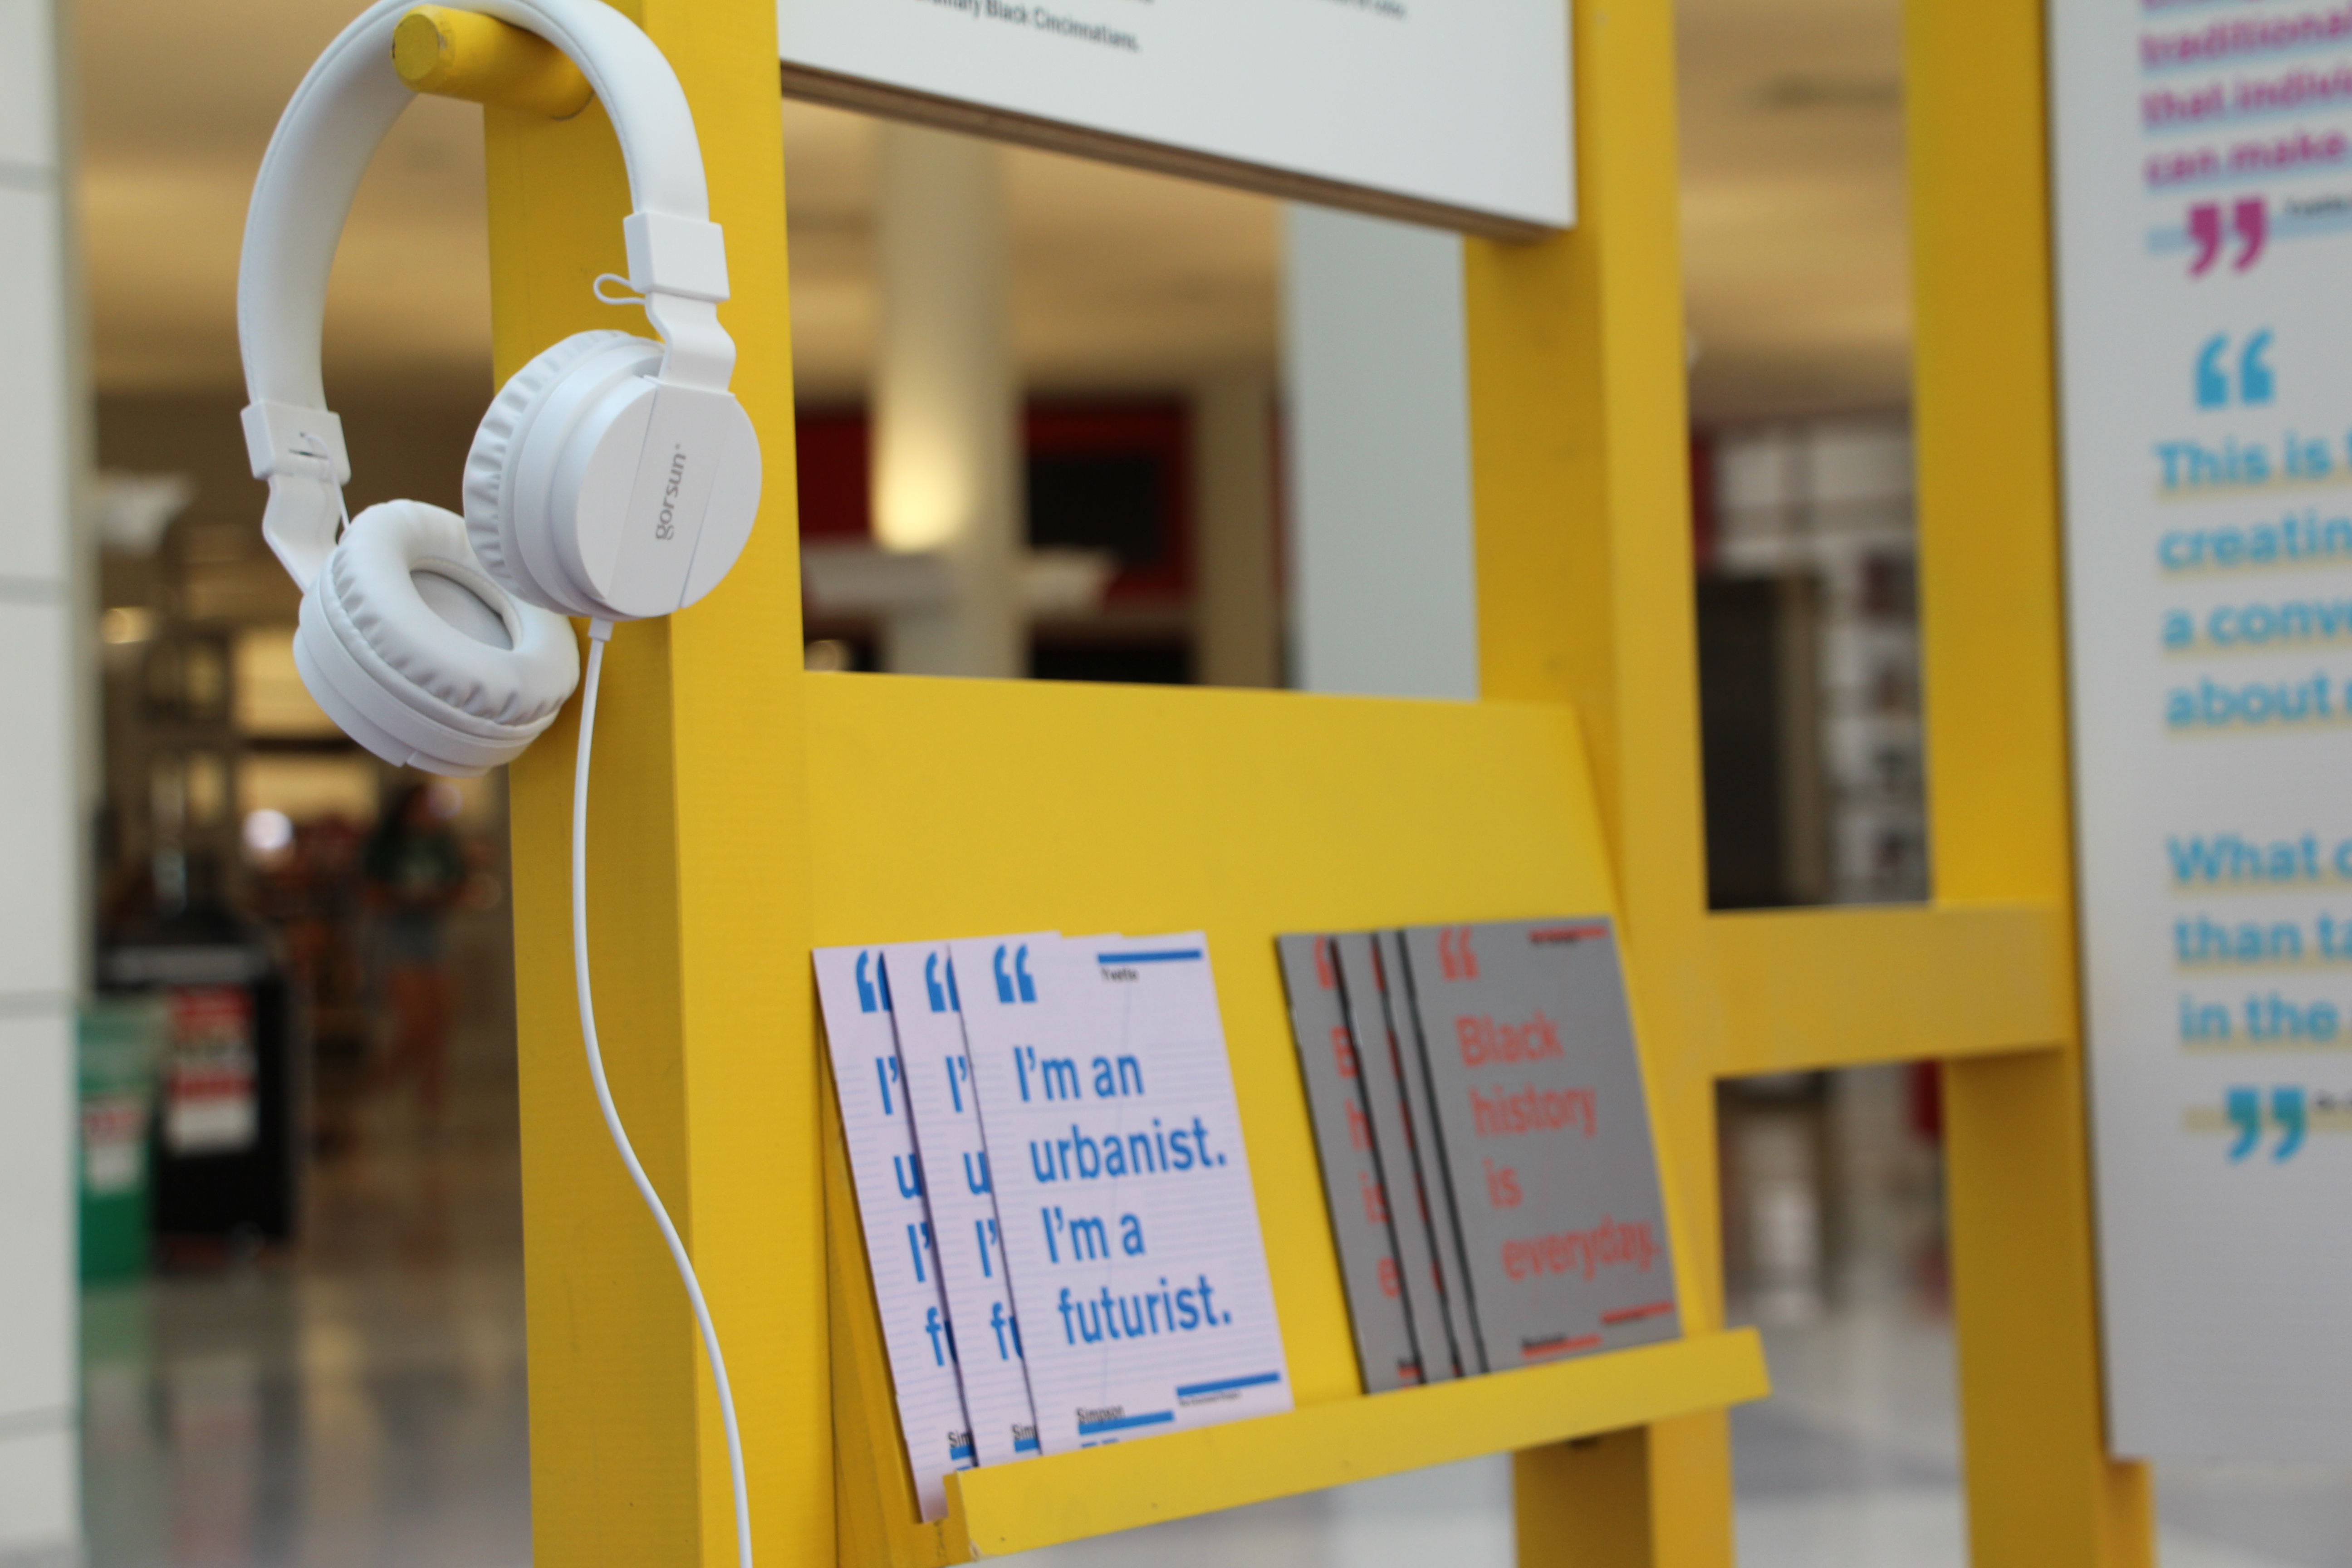 A pair of white headphones hangs from a bright yellow fixture, also holding a row of small paperback books